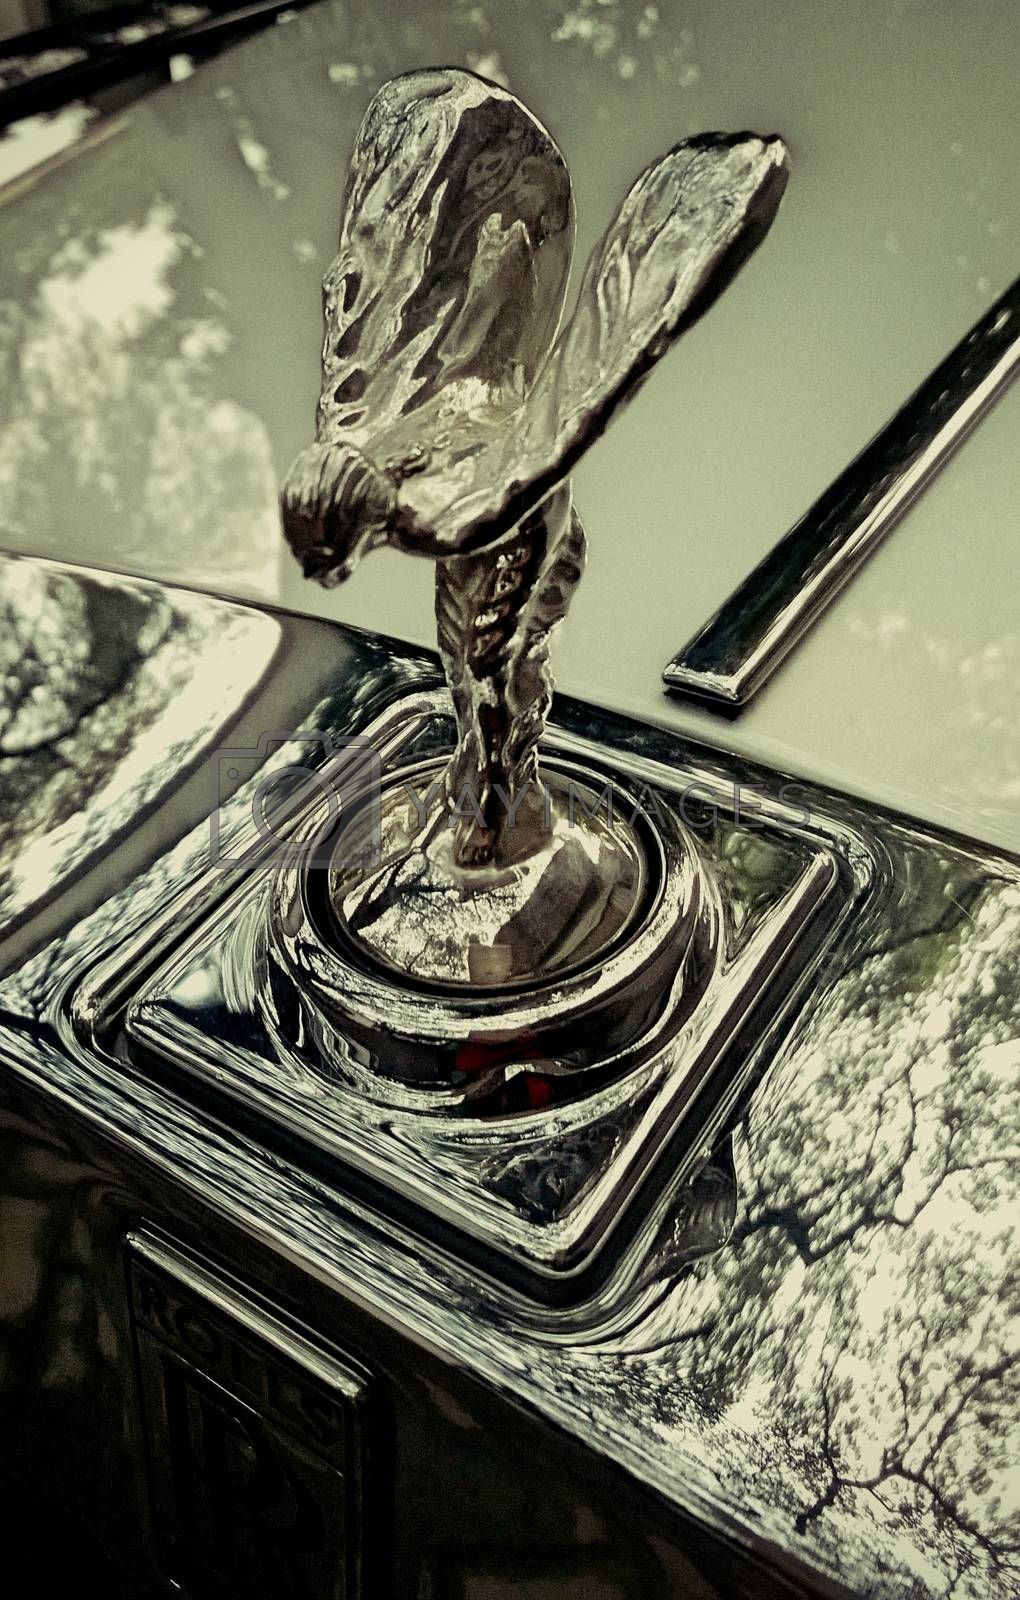 Royalty free image of Roll Royce by thefinalmiracle